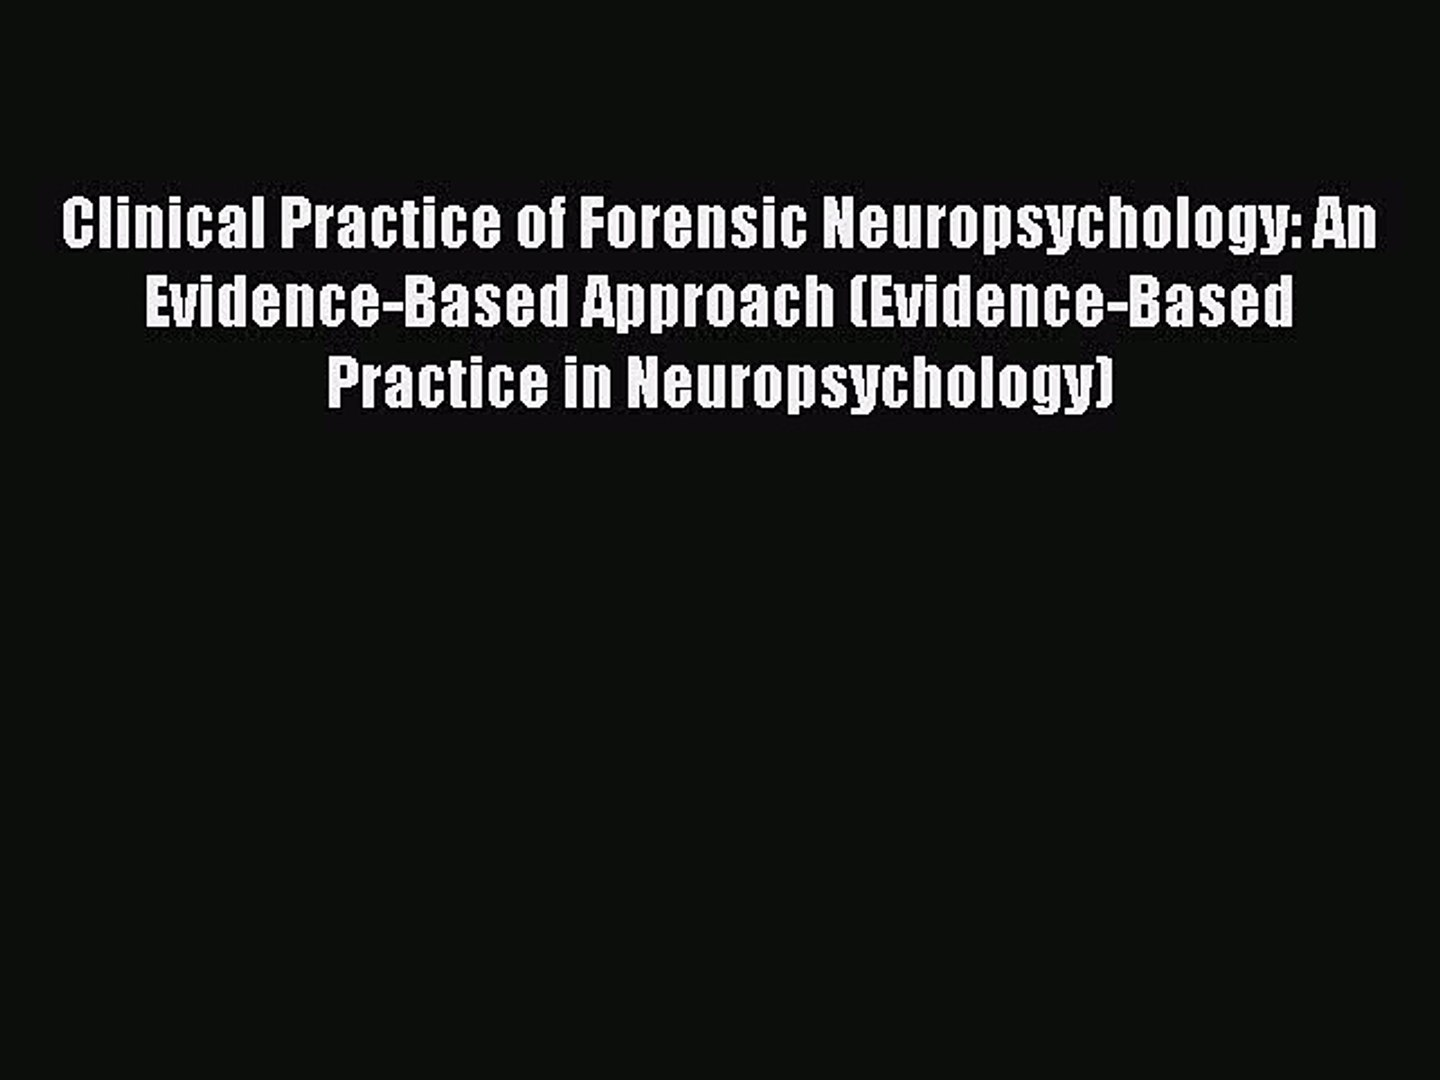 Read Book Clinical Practice Of Forensic Neuropsychology An Evidence Based Approach Evidence Based Video Dailymotion